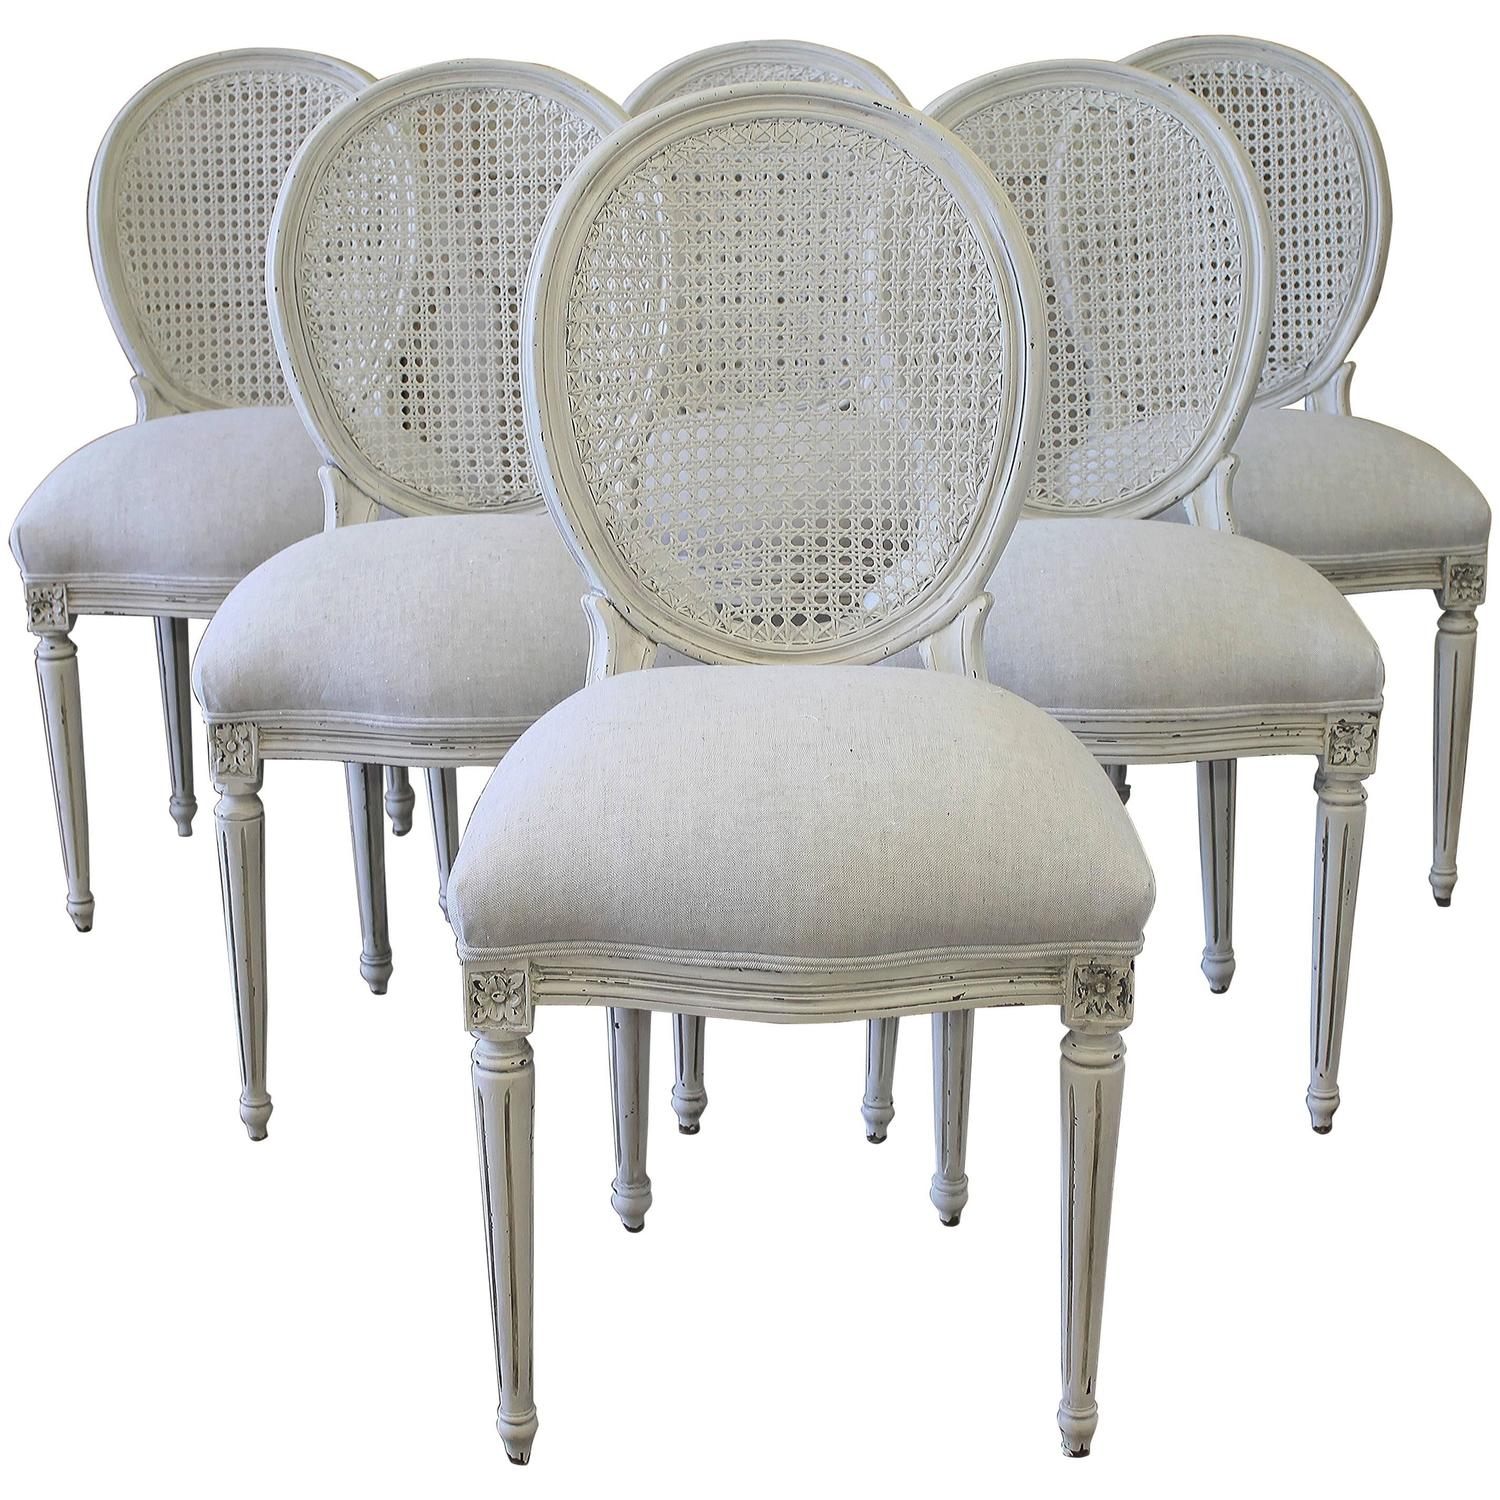 Cane Dining Chairs Louis Xvi Style Cane Back Dining Chairs At 1stdibs